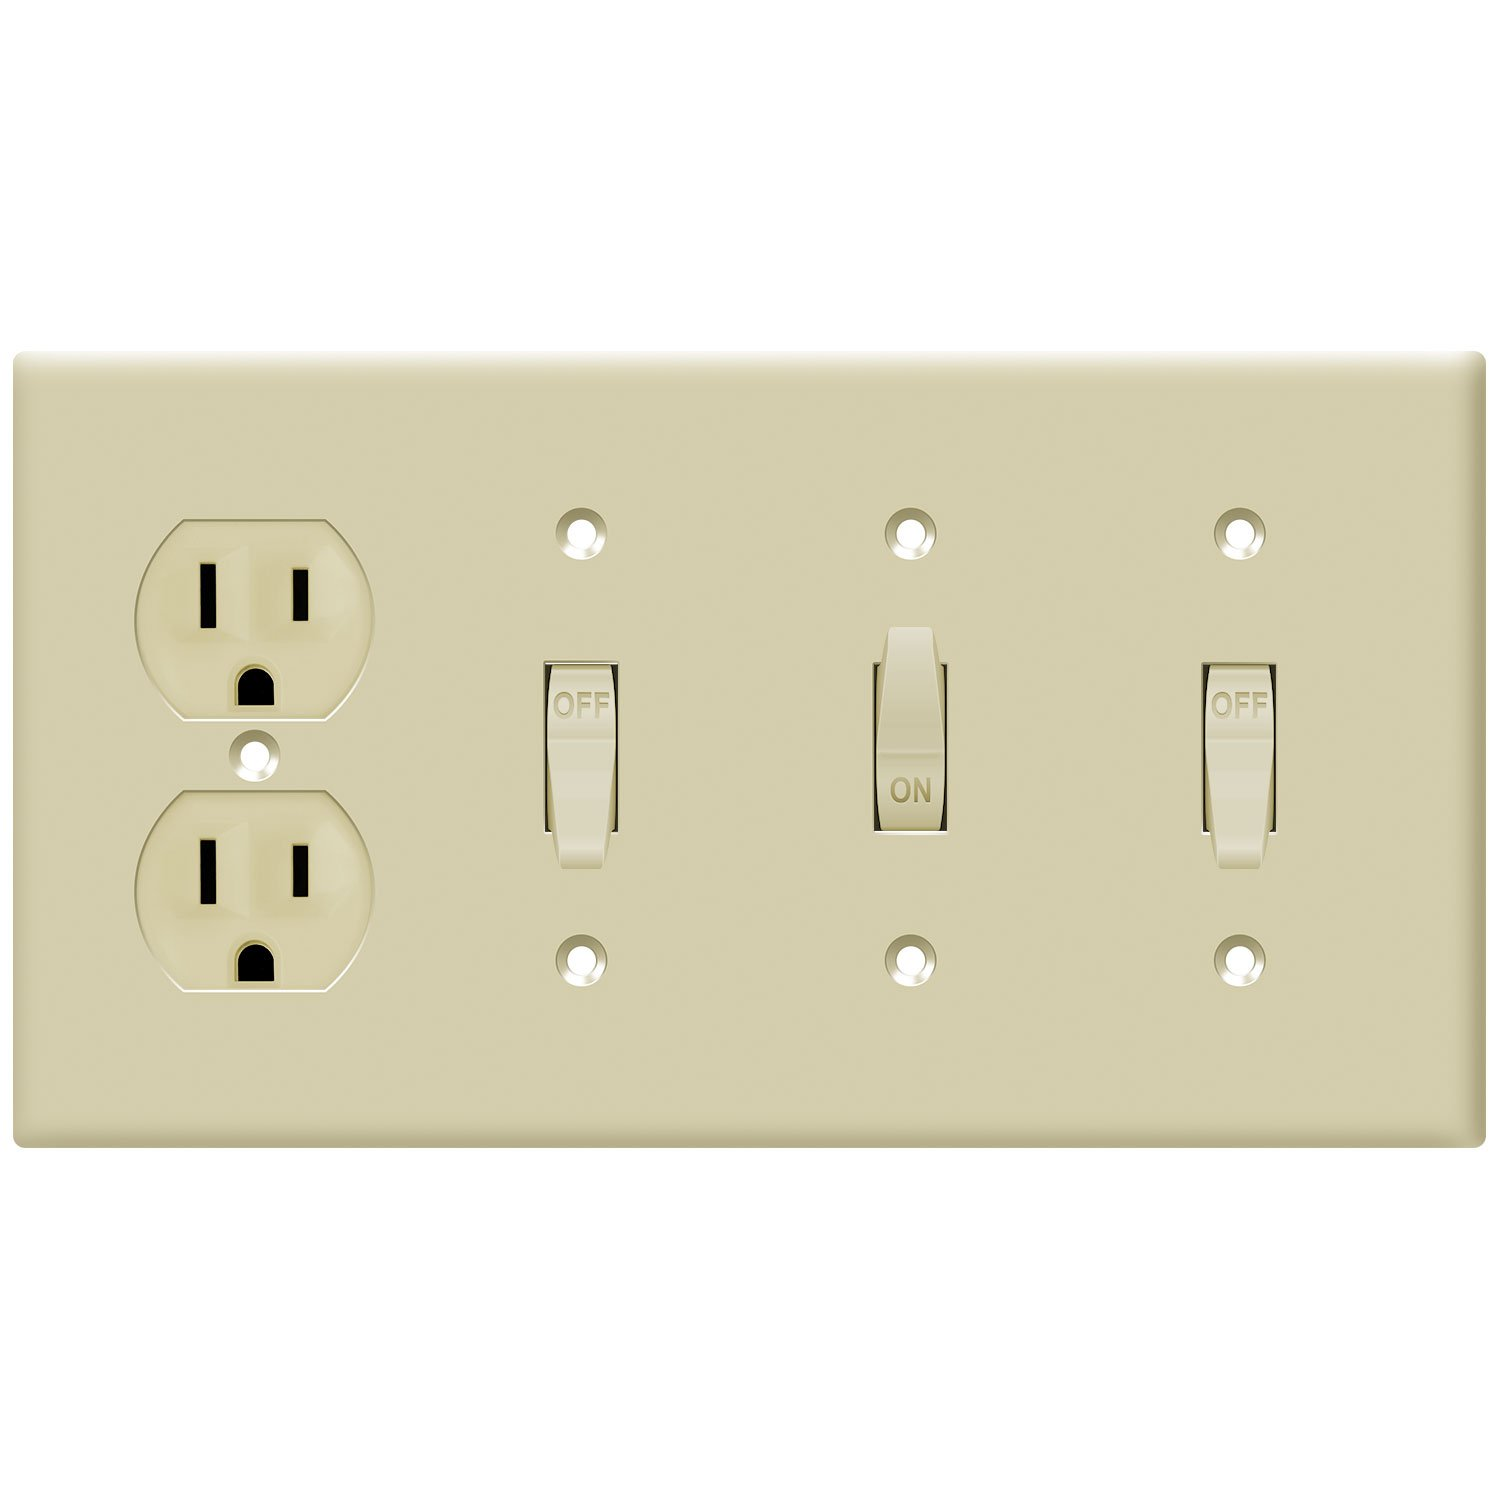 881321-W Polycarbonate Thermoplastic Size 4-Gang 4.50 x 8.19 White Size 4-Gang 4.50 x 8.19 ENERLITES Combination Toggle Light Switch//Duplex Receptacle Outlet Wall Plate